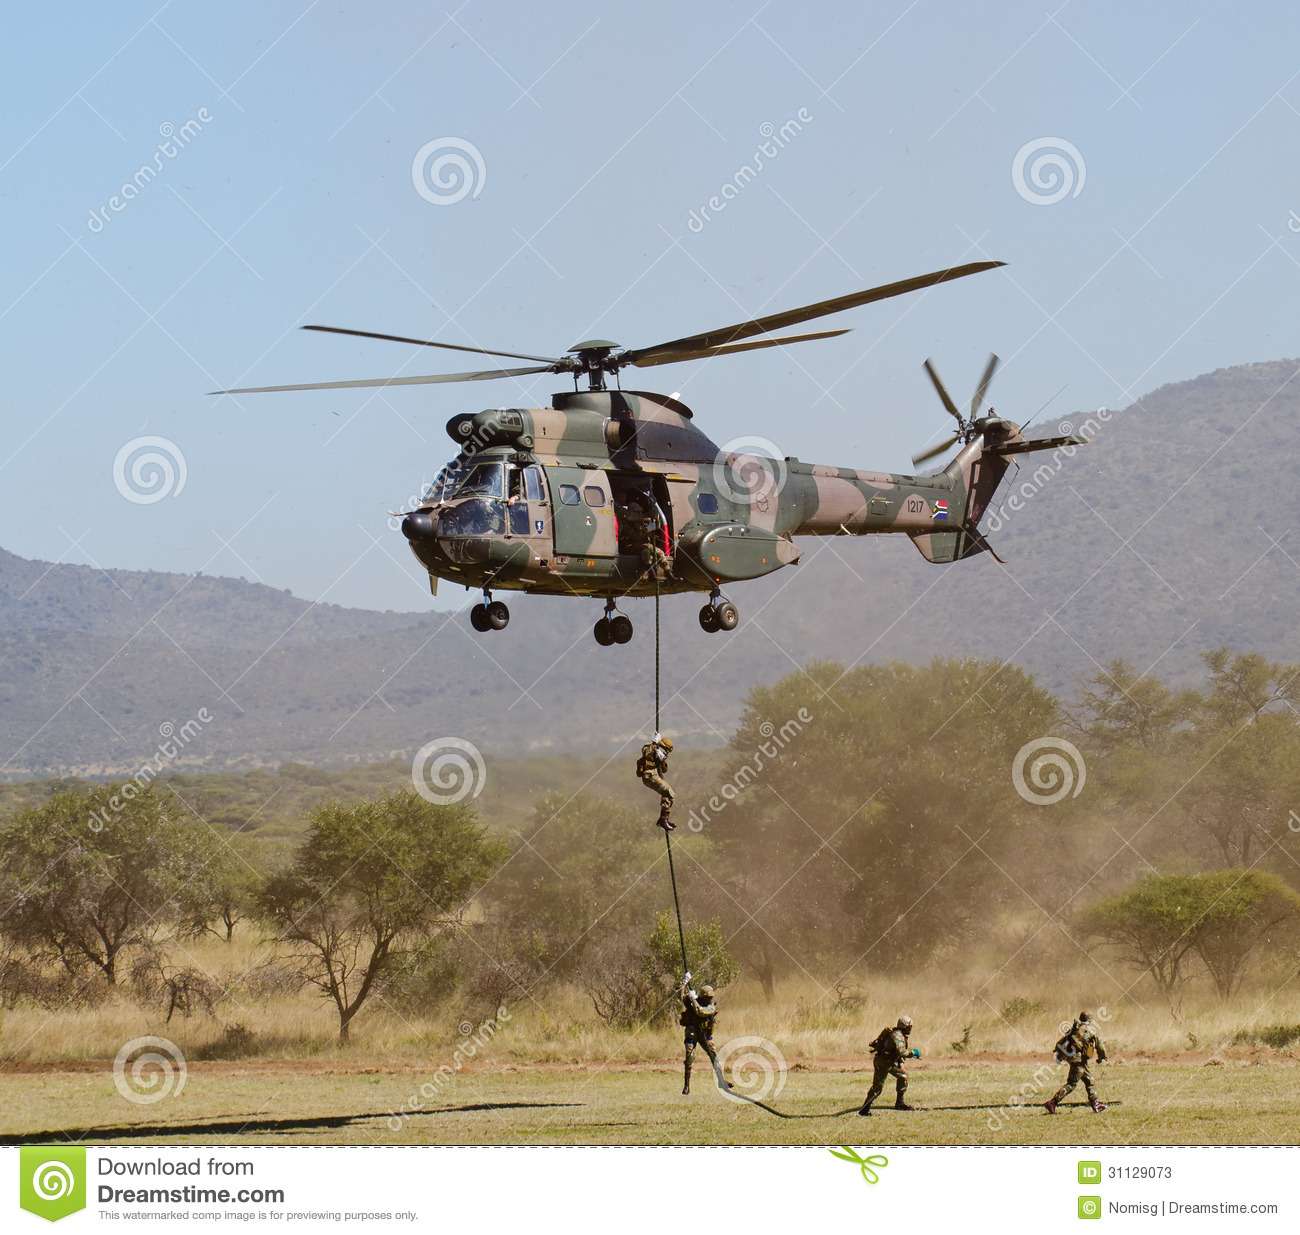 helicopter rope ladder with Stock Photos Rope Ladder Helicopter Roodewal South Africa May Oryx Lowering Troops Saaf Air Power Capability Image31129073 on Stock Photography Uh 60 Black Hawk Helicopter Image2428032 besides Metal Oil Drain Pan Round Metal Oil Drain Pan Metal Oil Drip Pan Canadian Tire moreover Gotcha Rescue Systems Kit 50m Spanset 17m Travel moreover Latchways Sealed Stainless Steel Type 3 Srl Self Retracting Lanyard With Emergency Retrieval together with Tiger Tails Torapoli Pipe Yellow Black Stripe 2 5m.